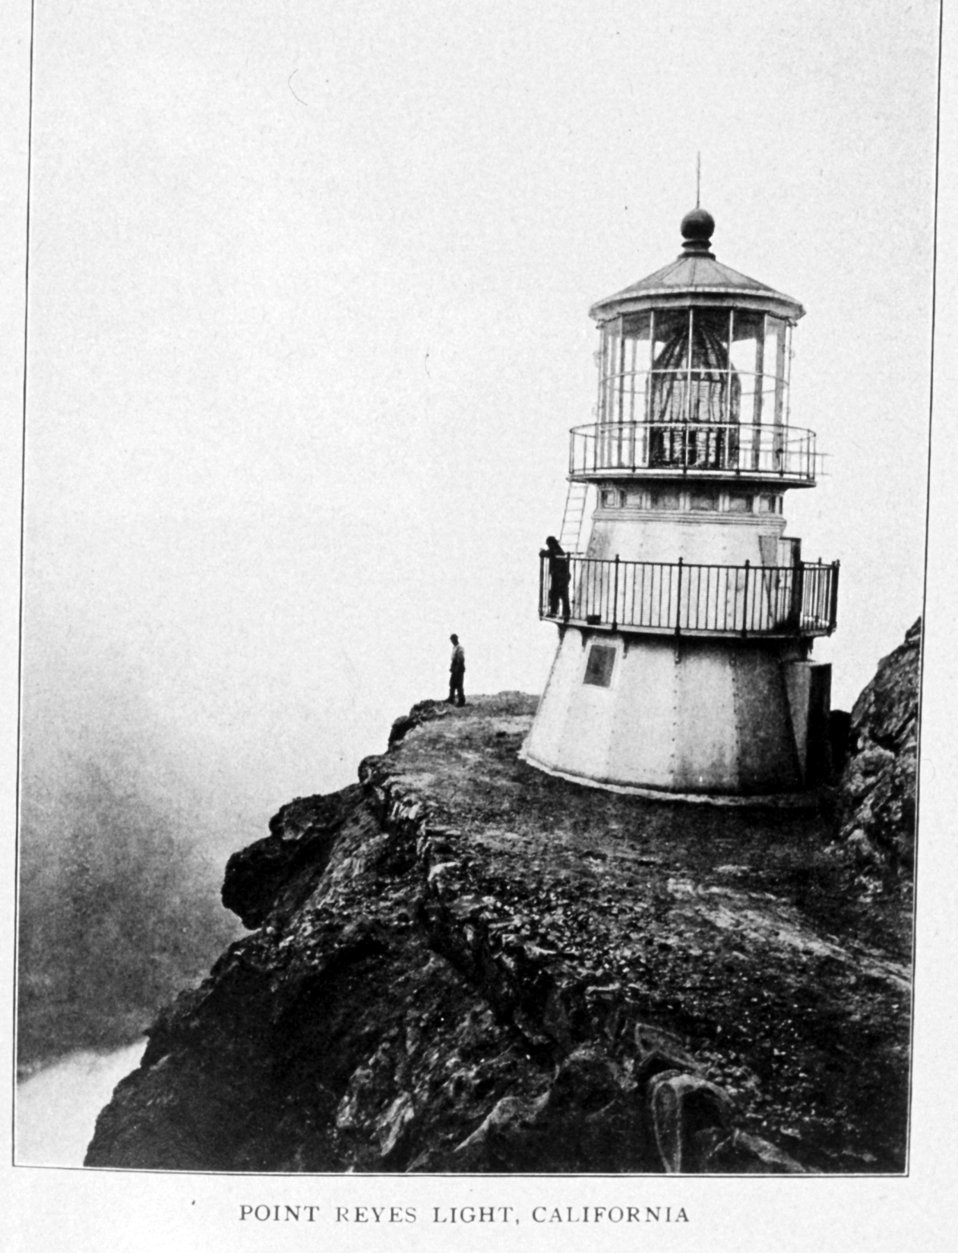 Point Reyes Light, California.  In: 'Lighthouses and Lightships of the United States' by George R. Putnam, p. 140,  1917.  Houghton Mifflin and Company, Boston. Library Call No. 527.7 P98.